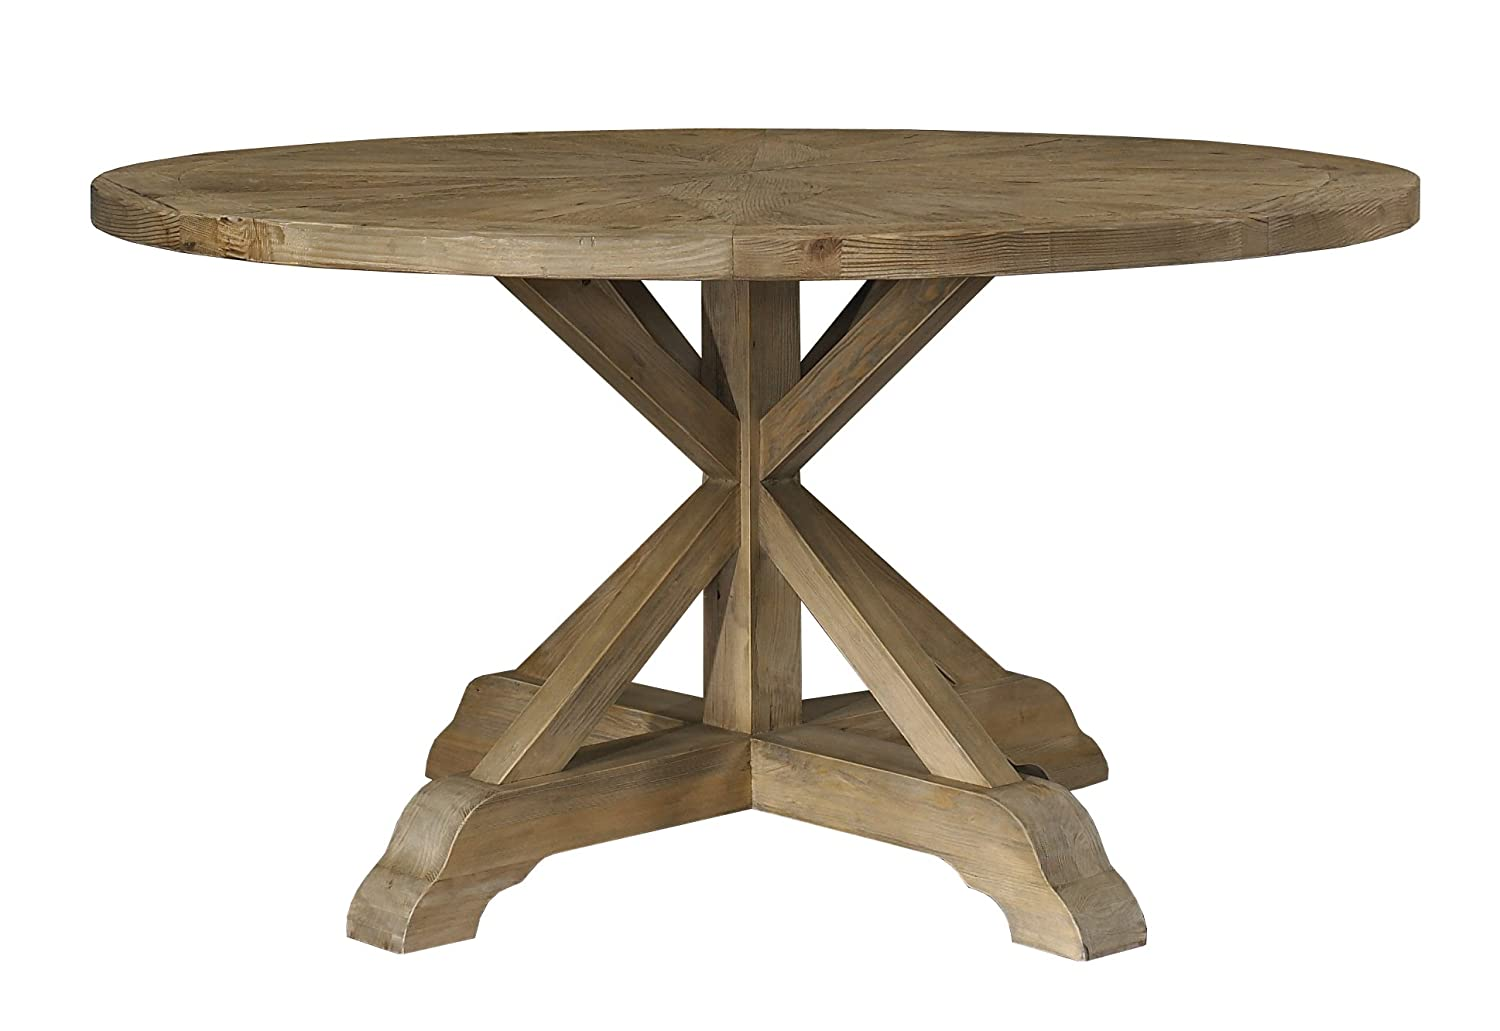 Round Wood Kitchen Tables Amazon padmas plantataion salvaged wood dining table 60 inch amazon padmas plantataion salvaged wood dining table 60 inch round tables workwithnaturefo